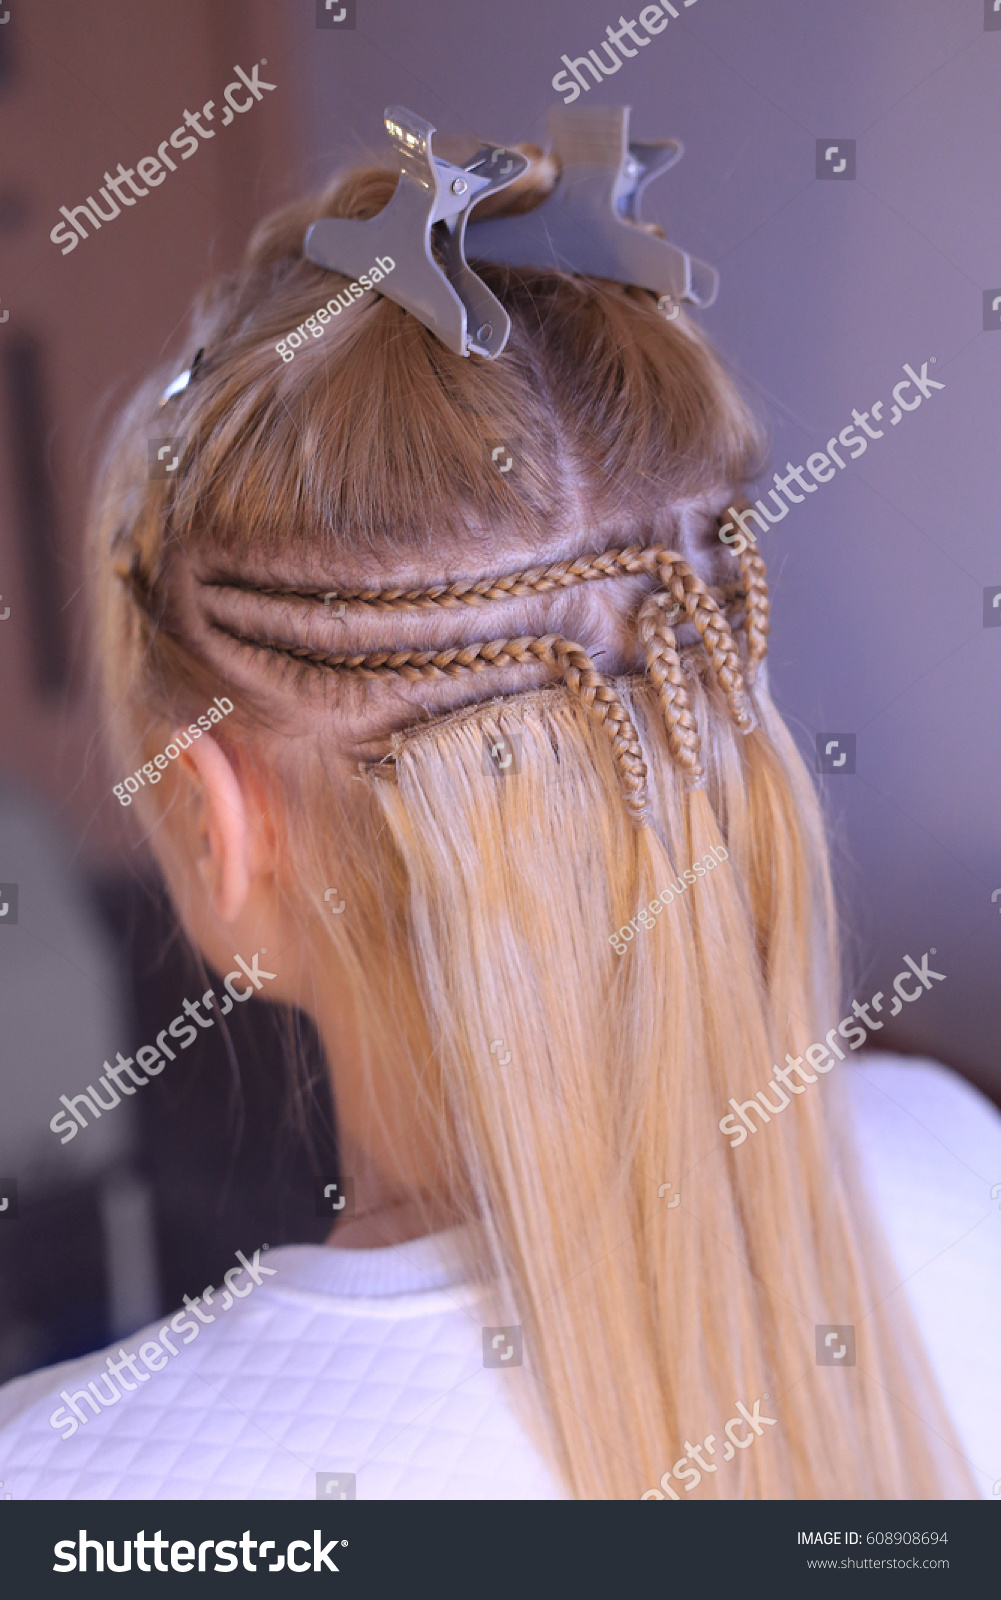 Hair Sewn On Pigtail Hair Extensions Stock Photo Edit Now